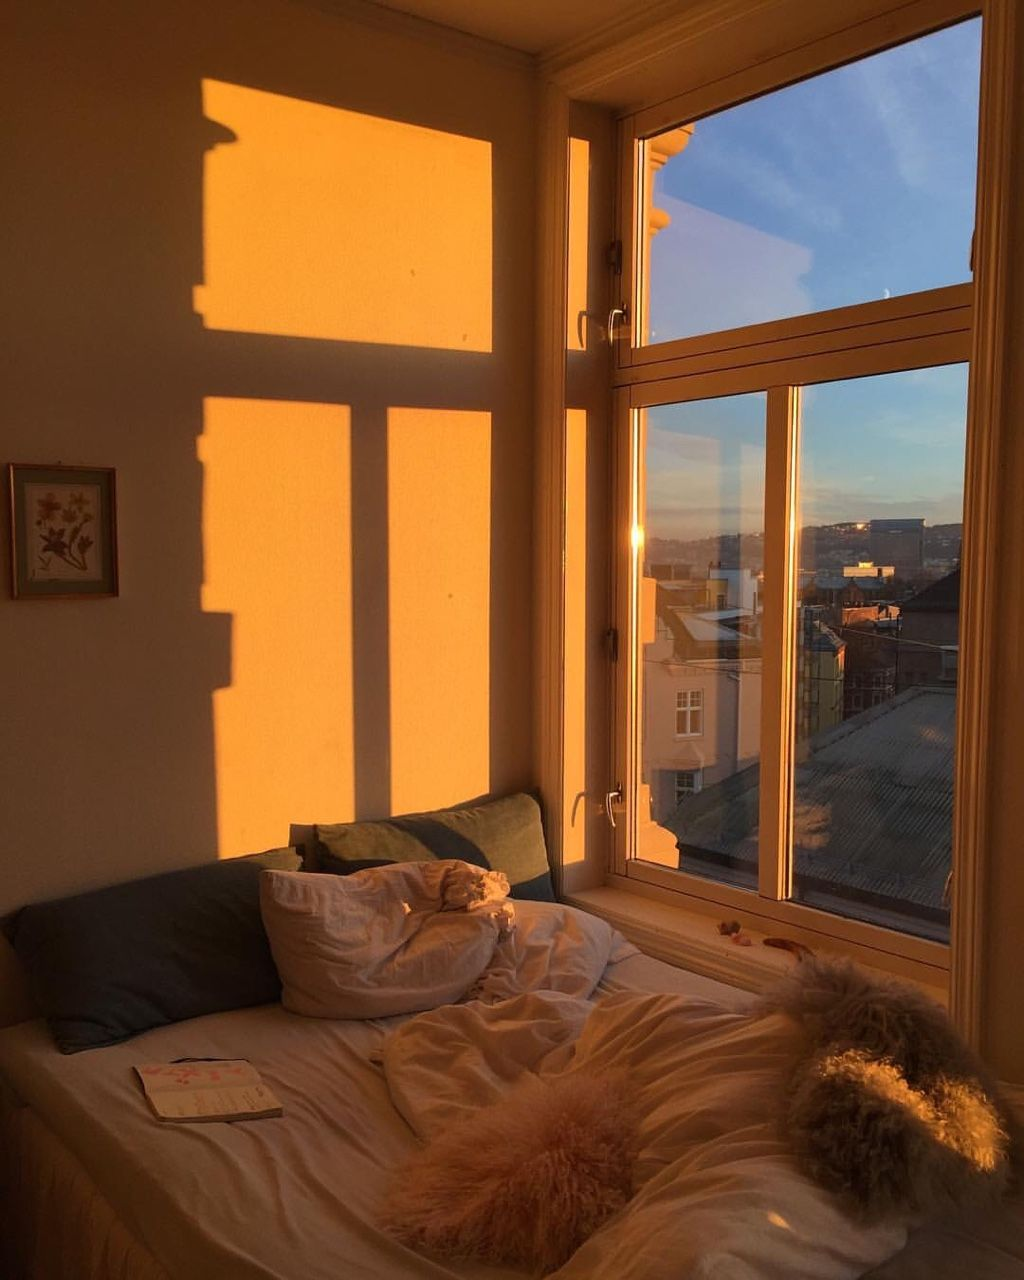 Crystal View Apartments: Morning Routine In 2019